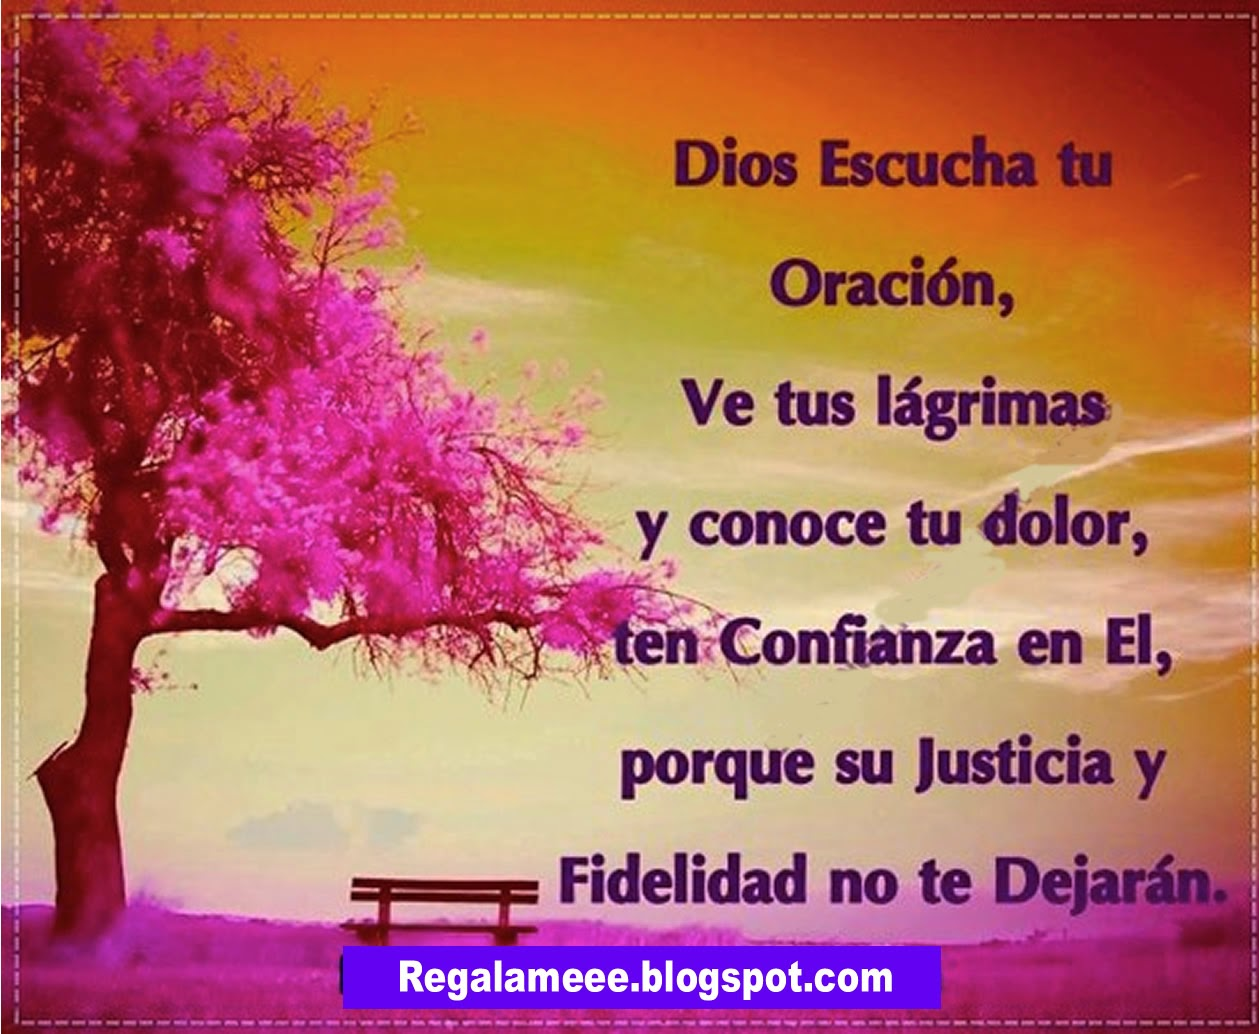 Frases Cristianas Cortas - Android Apps on Google Play